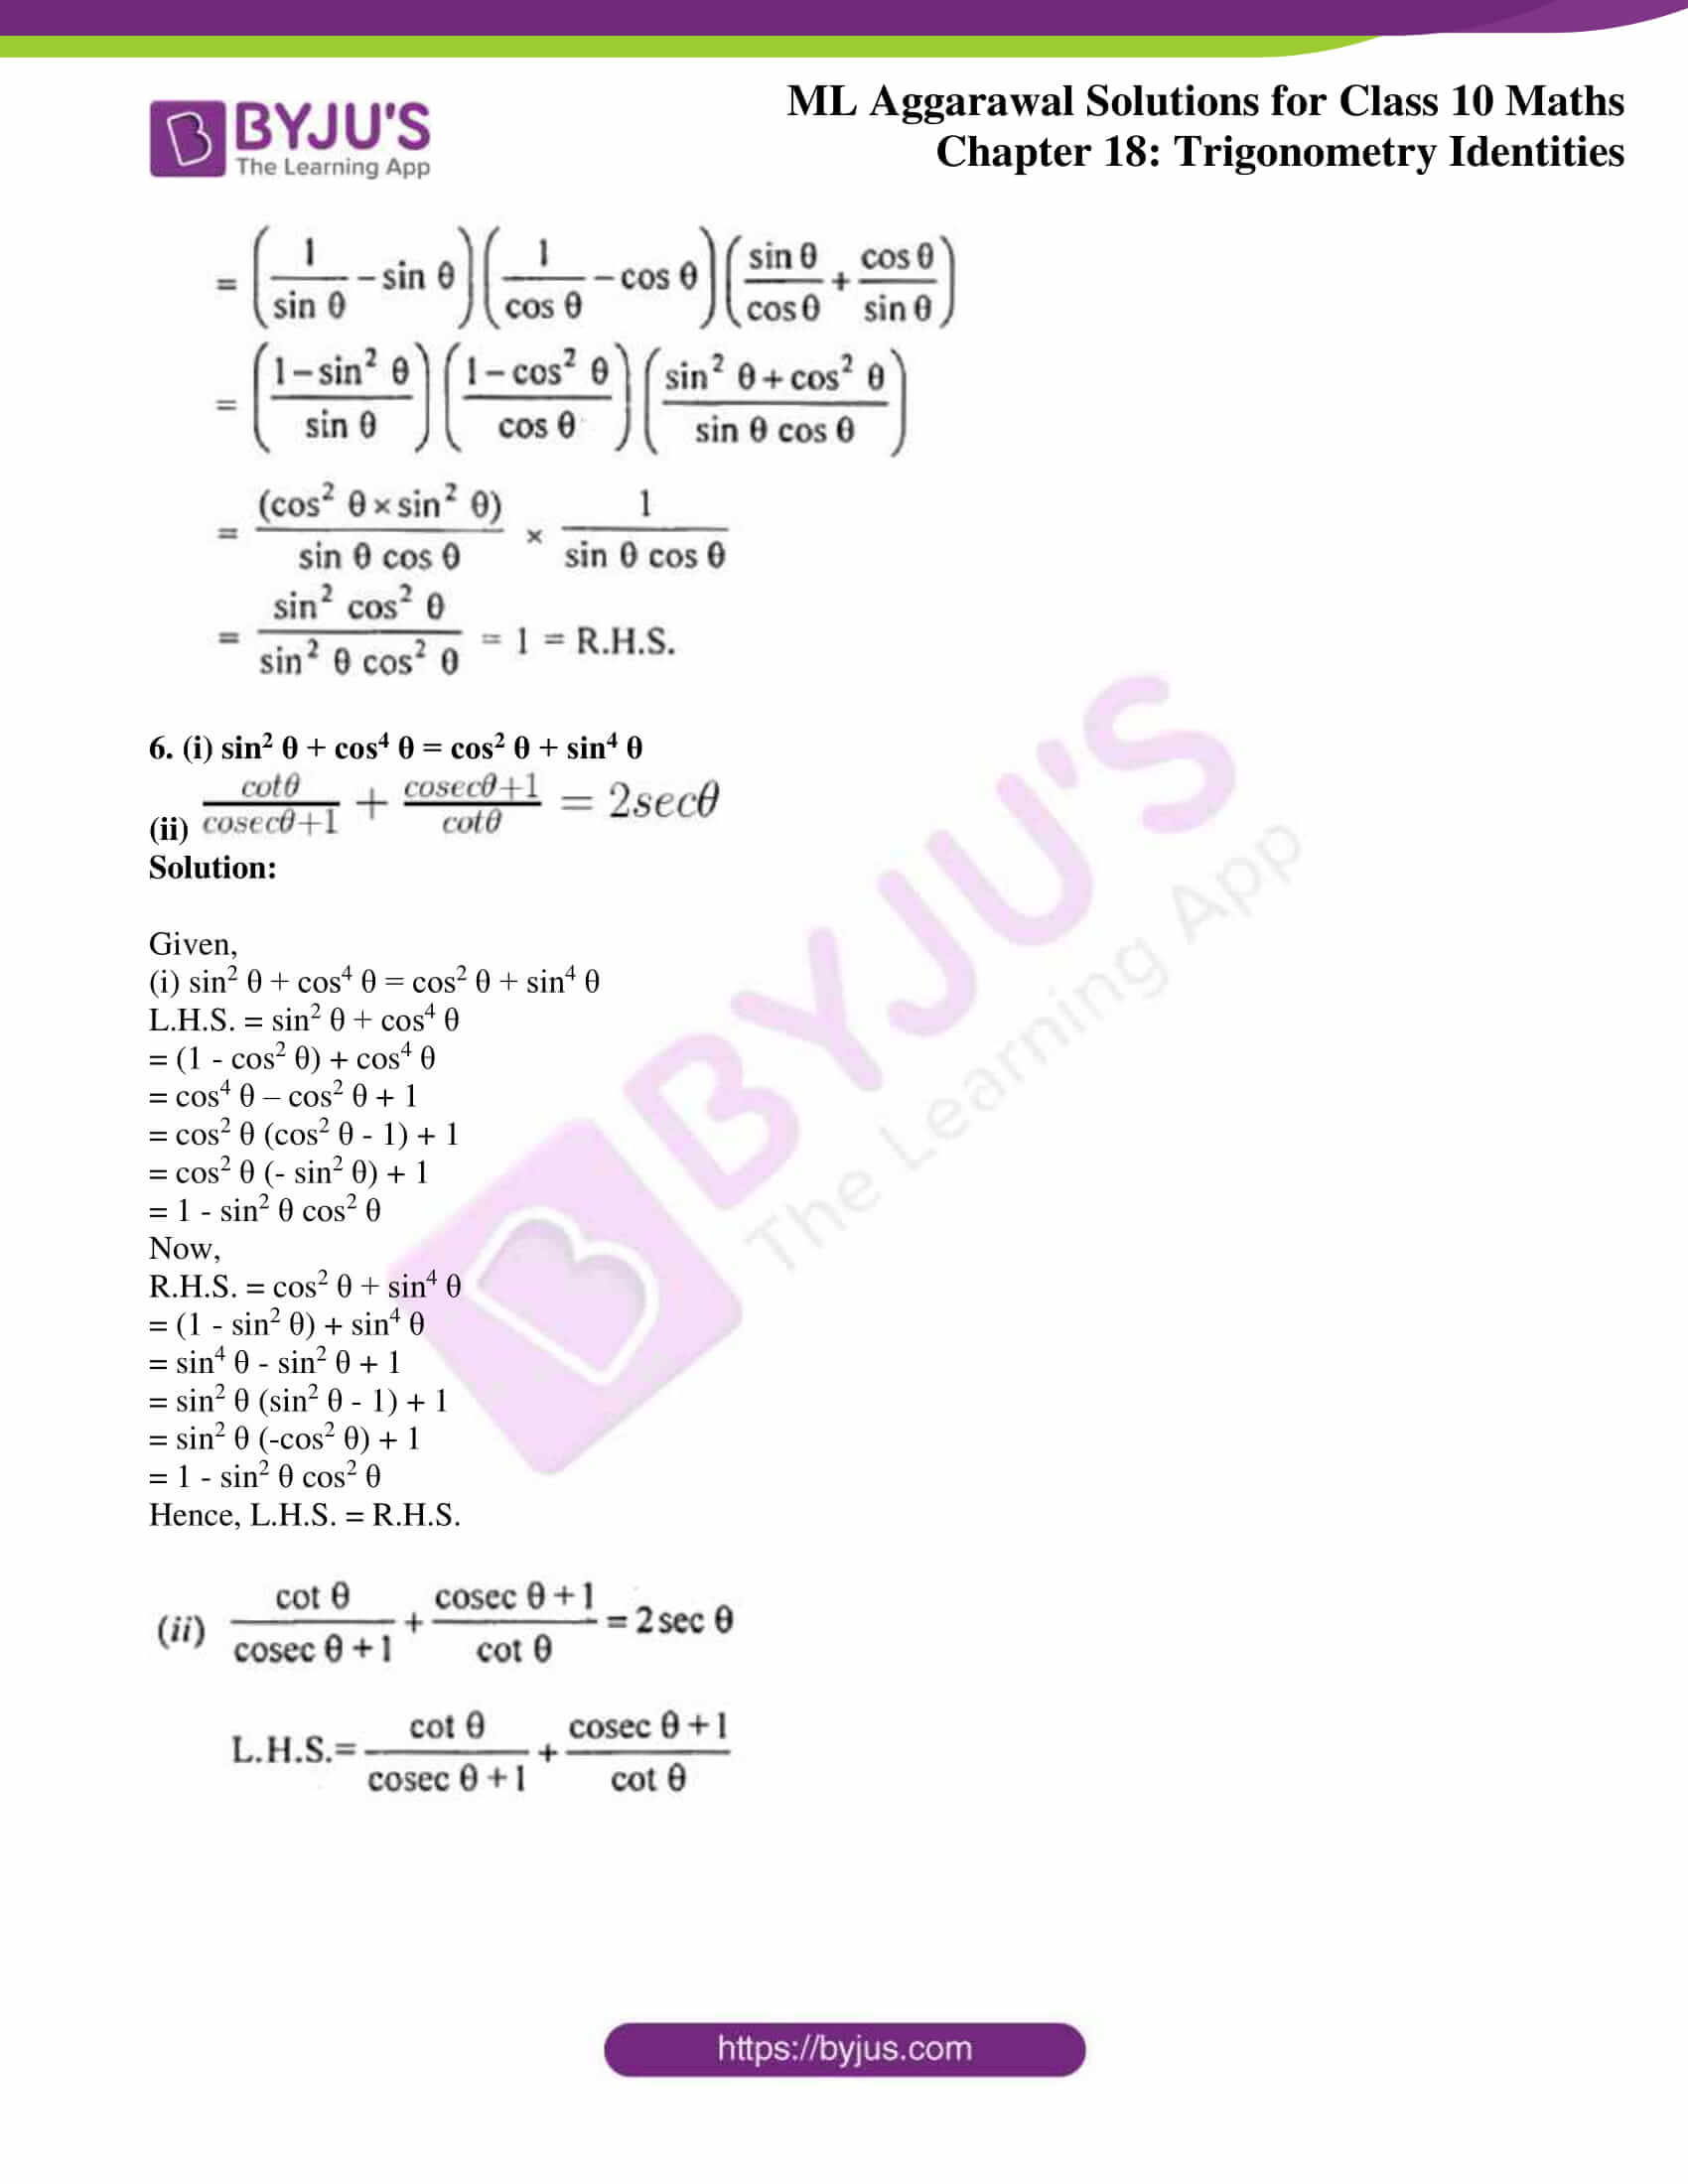 ml aggarwal solutions for class 10 maths chapter 18 31